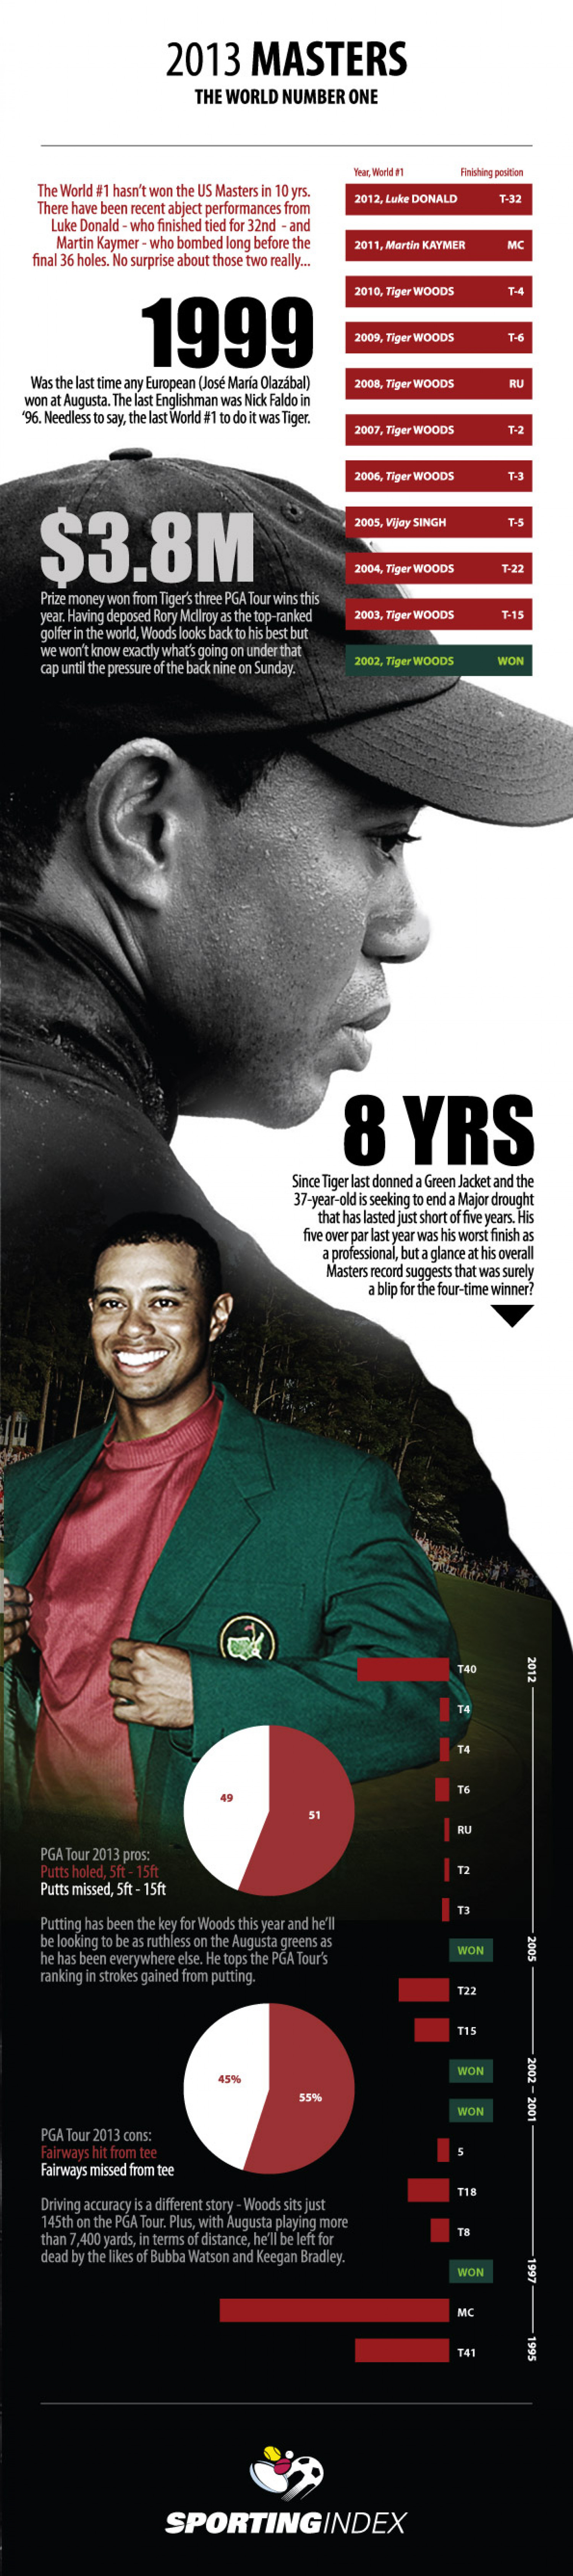 2013 Masters – The World Number One Infographic